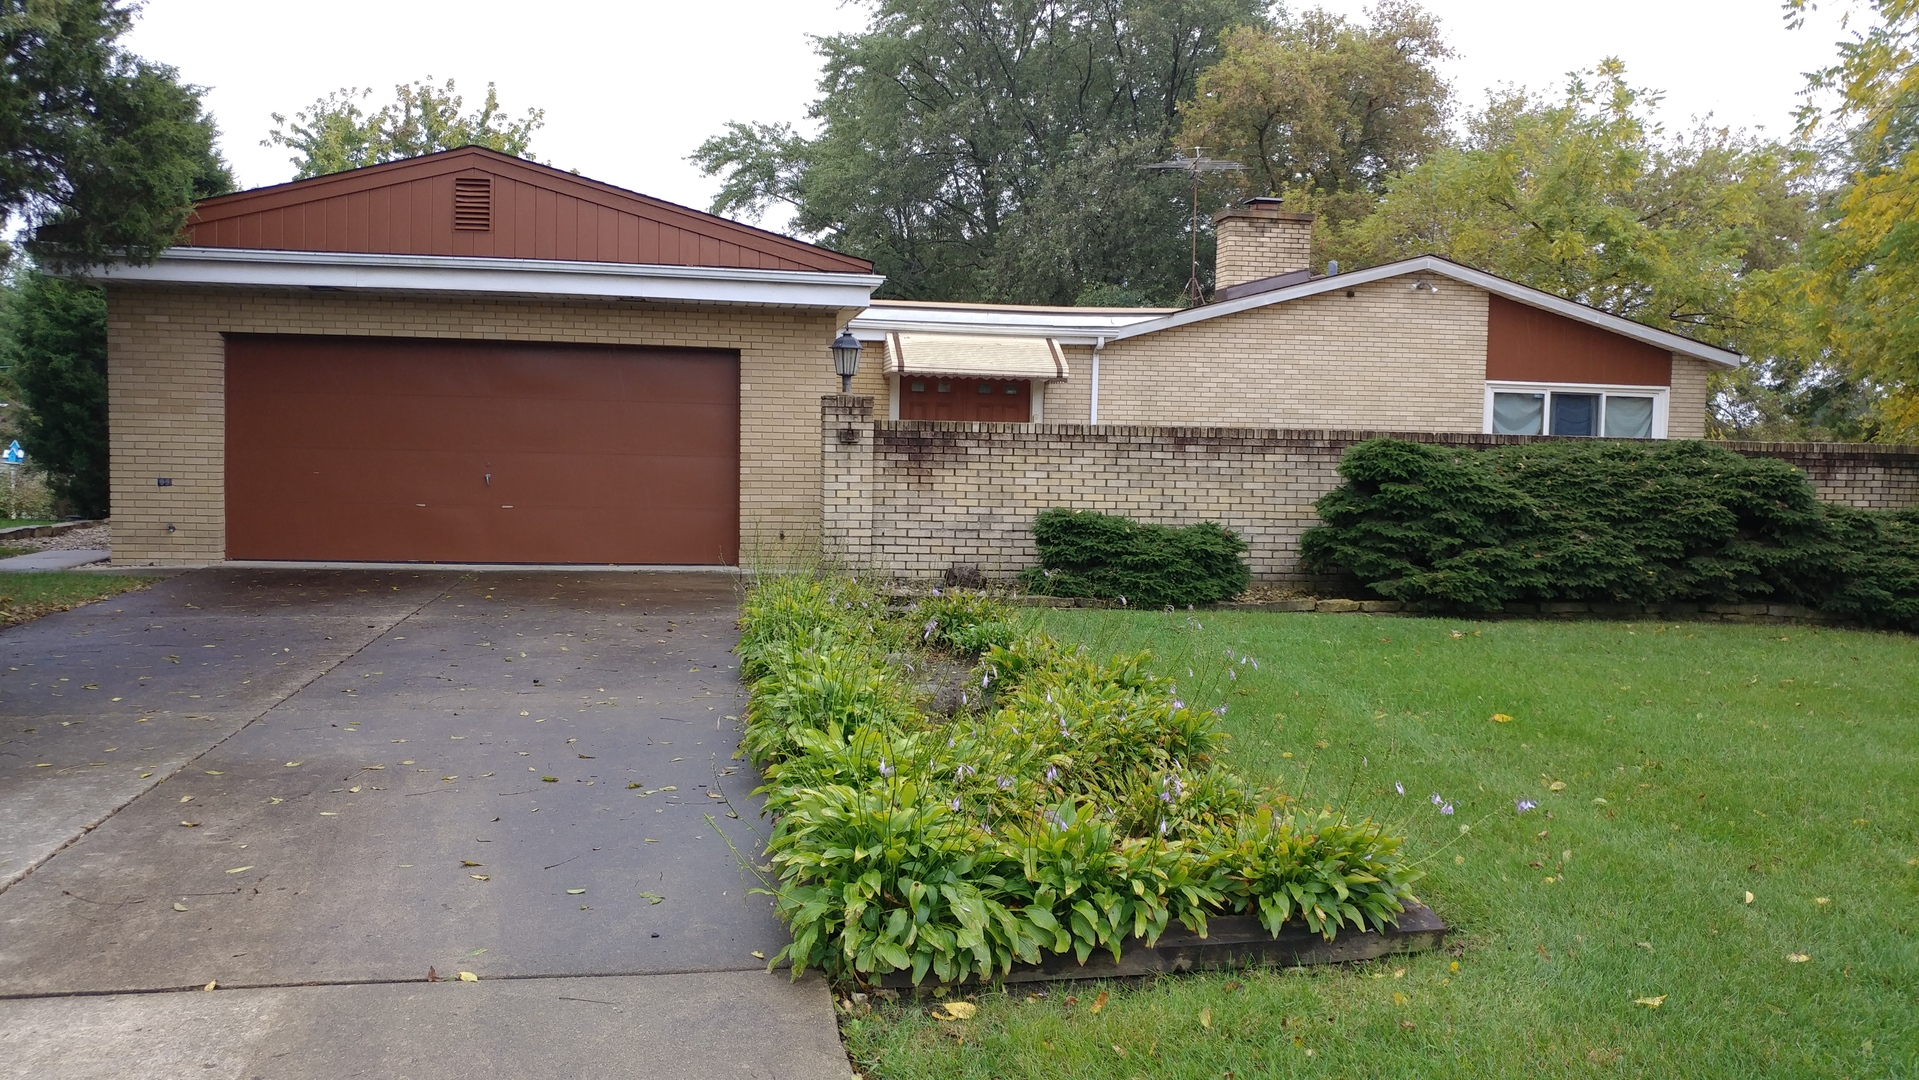 11 Maple Avenue, Lake Zurich, Illinois 60047